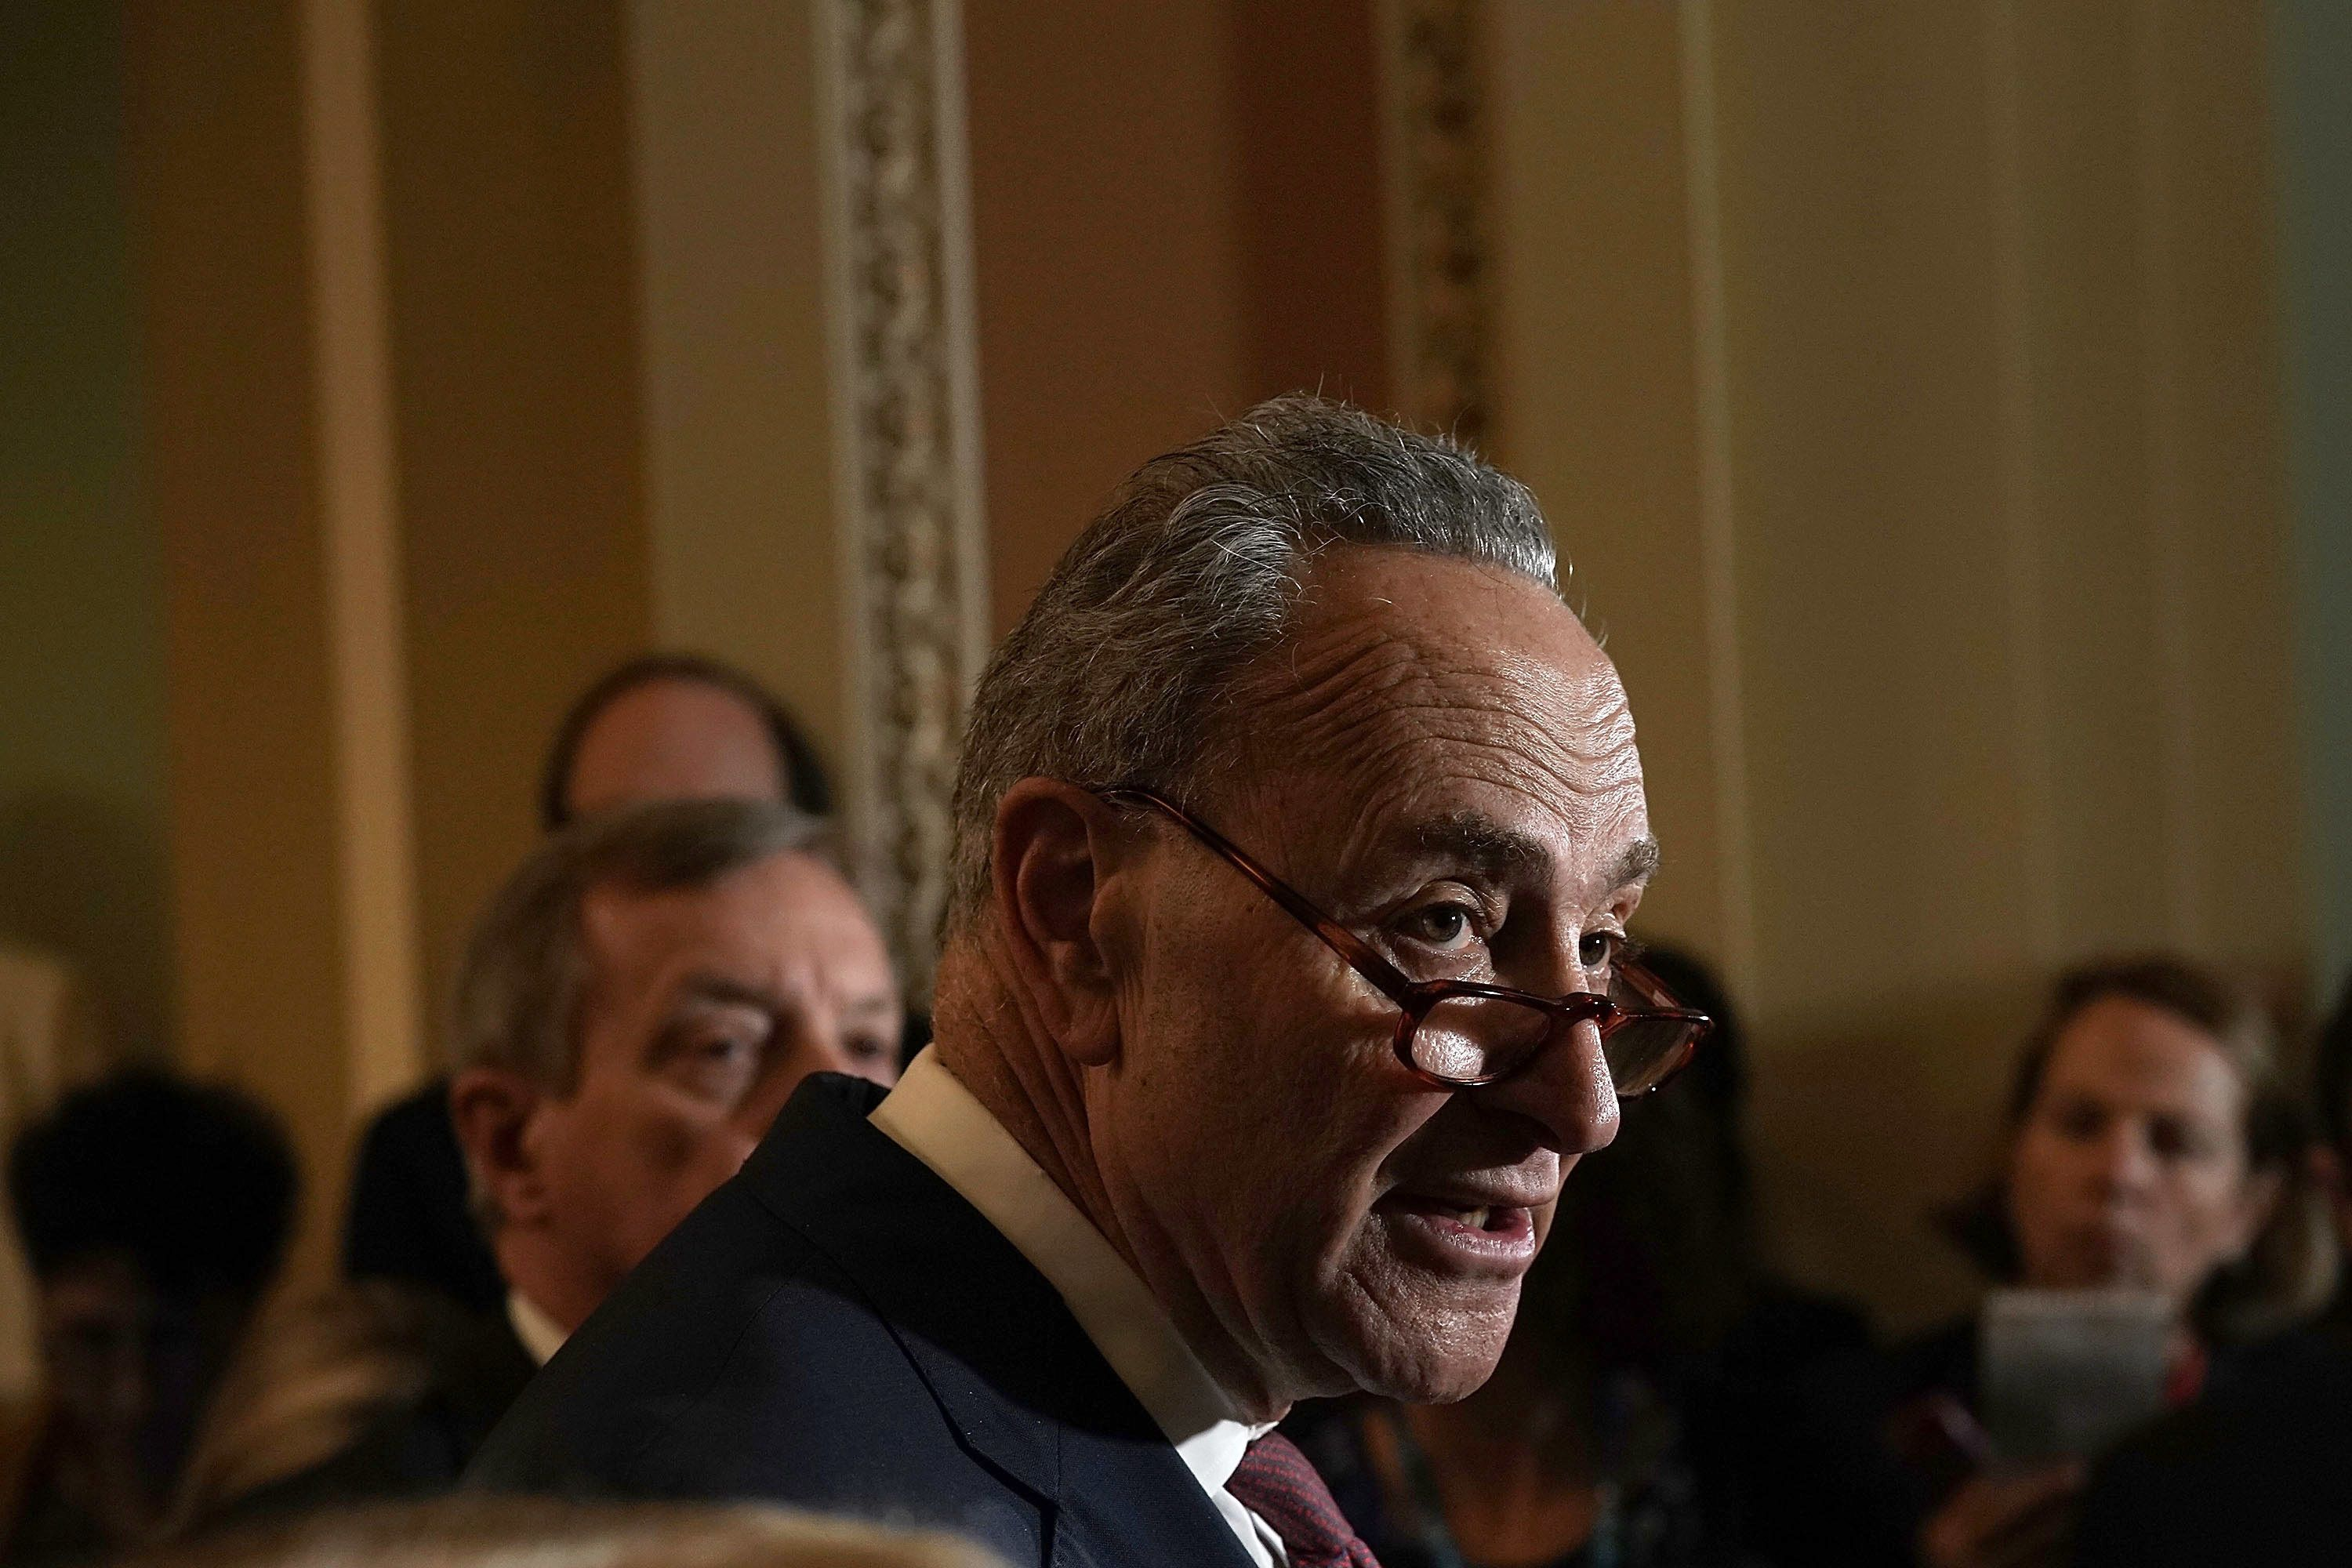 WASHINGTON, DC - JANUARY 23:  U.S. Senate Minority Leader Sen. Chuck Schumer (D-NY) speaks to members of the media after a weekly Senate Democratic Policy Luncheon January 23, 2018 at the U.S. Capitol in Washington, DC. Senate Democrats held a policy luncheon to discuss the Democratic agenda.  (Photo by Alex Wong/Getty Images)